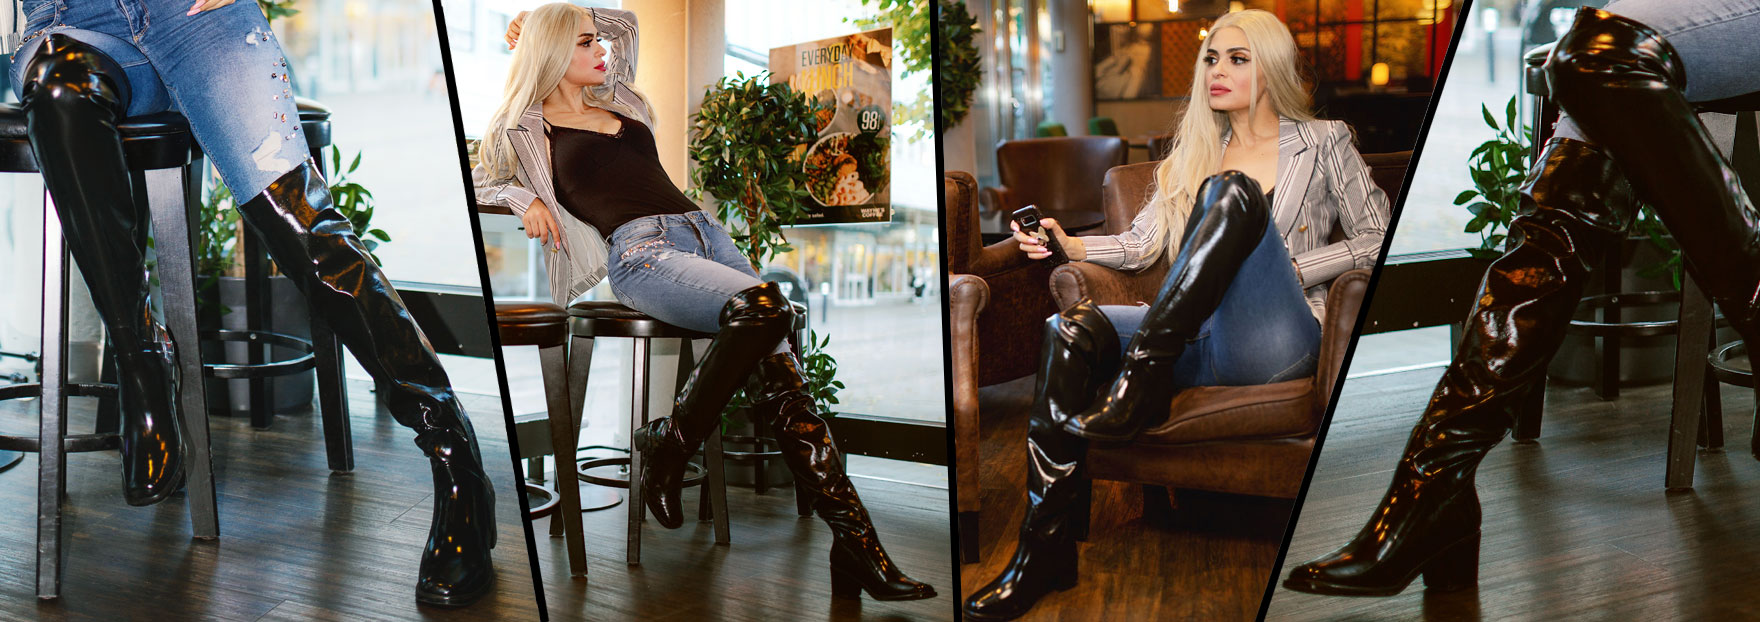 Boot Lovers dating